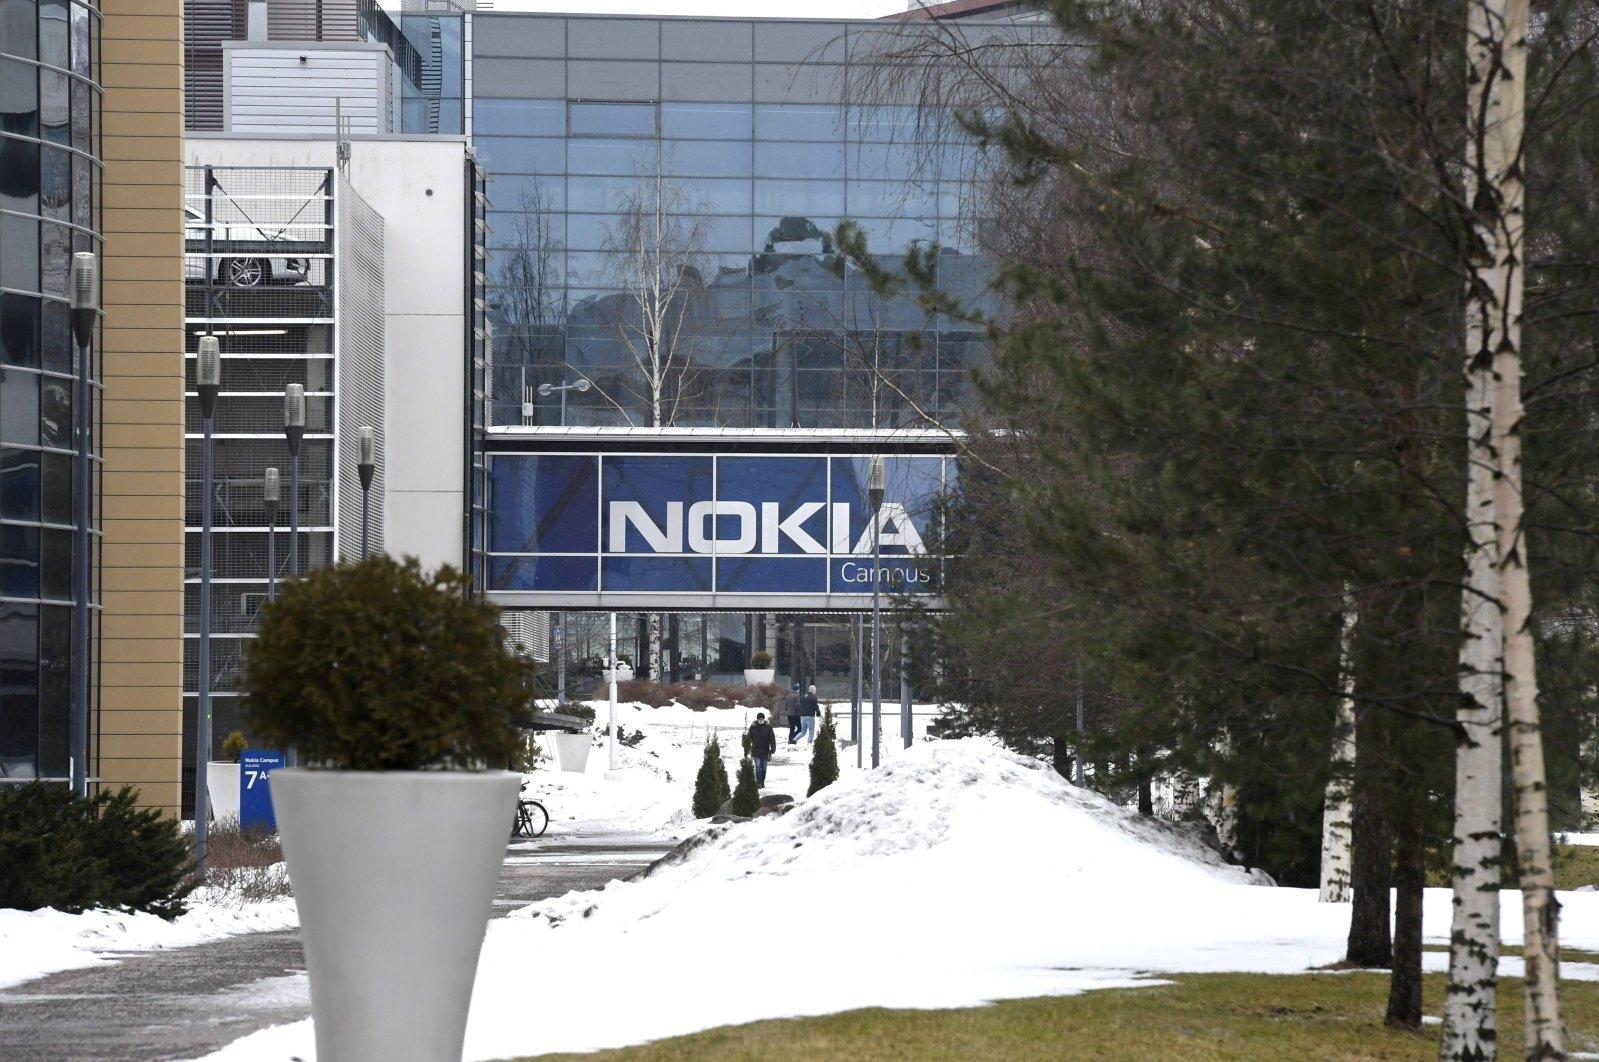 A view of the headquarters of the Finnish telecoms company Nokia in Espoo, Finland, March 16, 2021. (Reuters Photo)